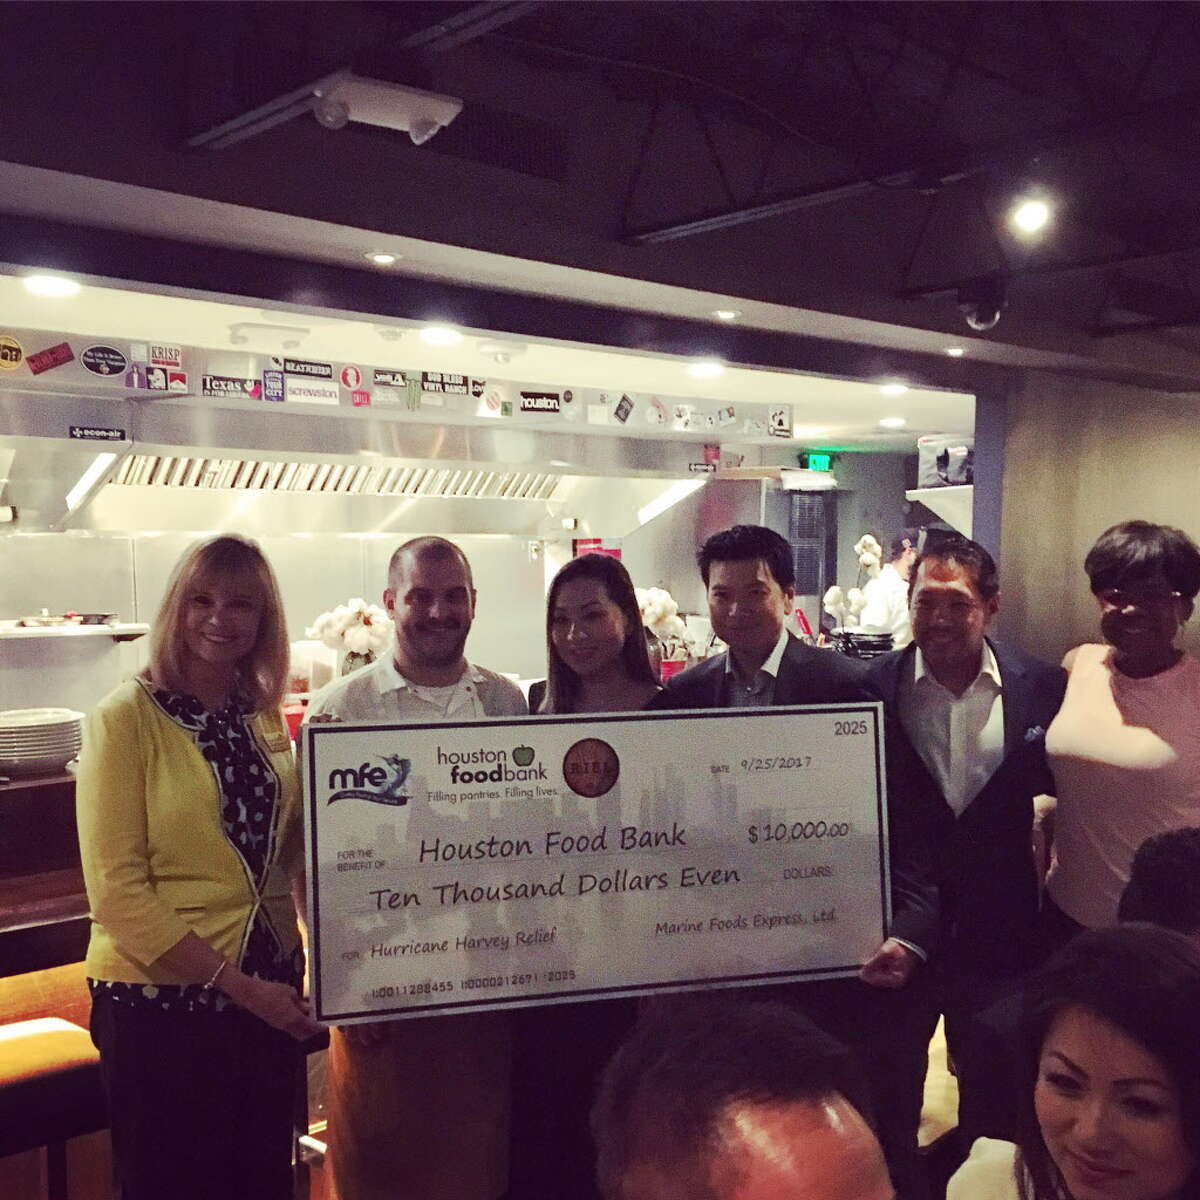 The check presentation at Riel restaurant during the Hurricane Harvey benefit dinner.